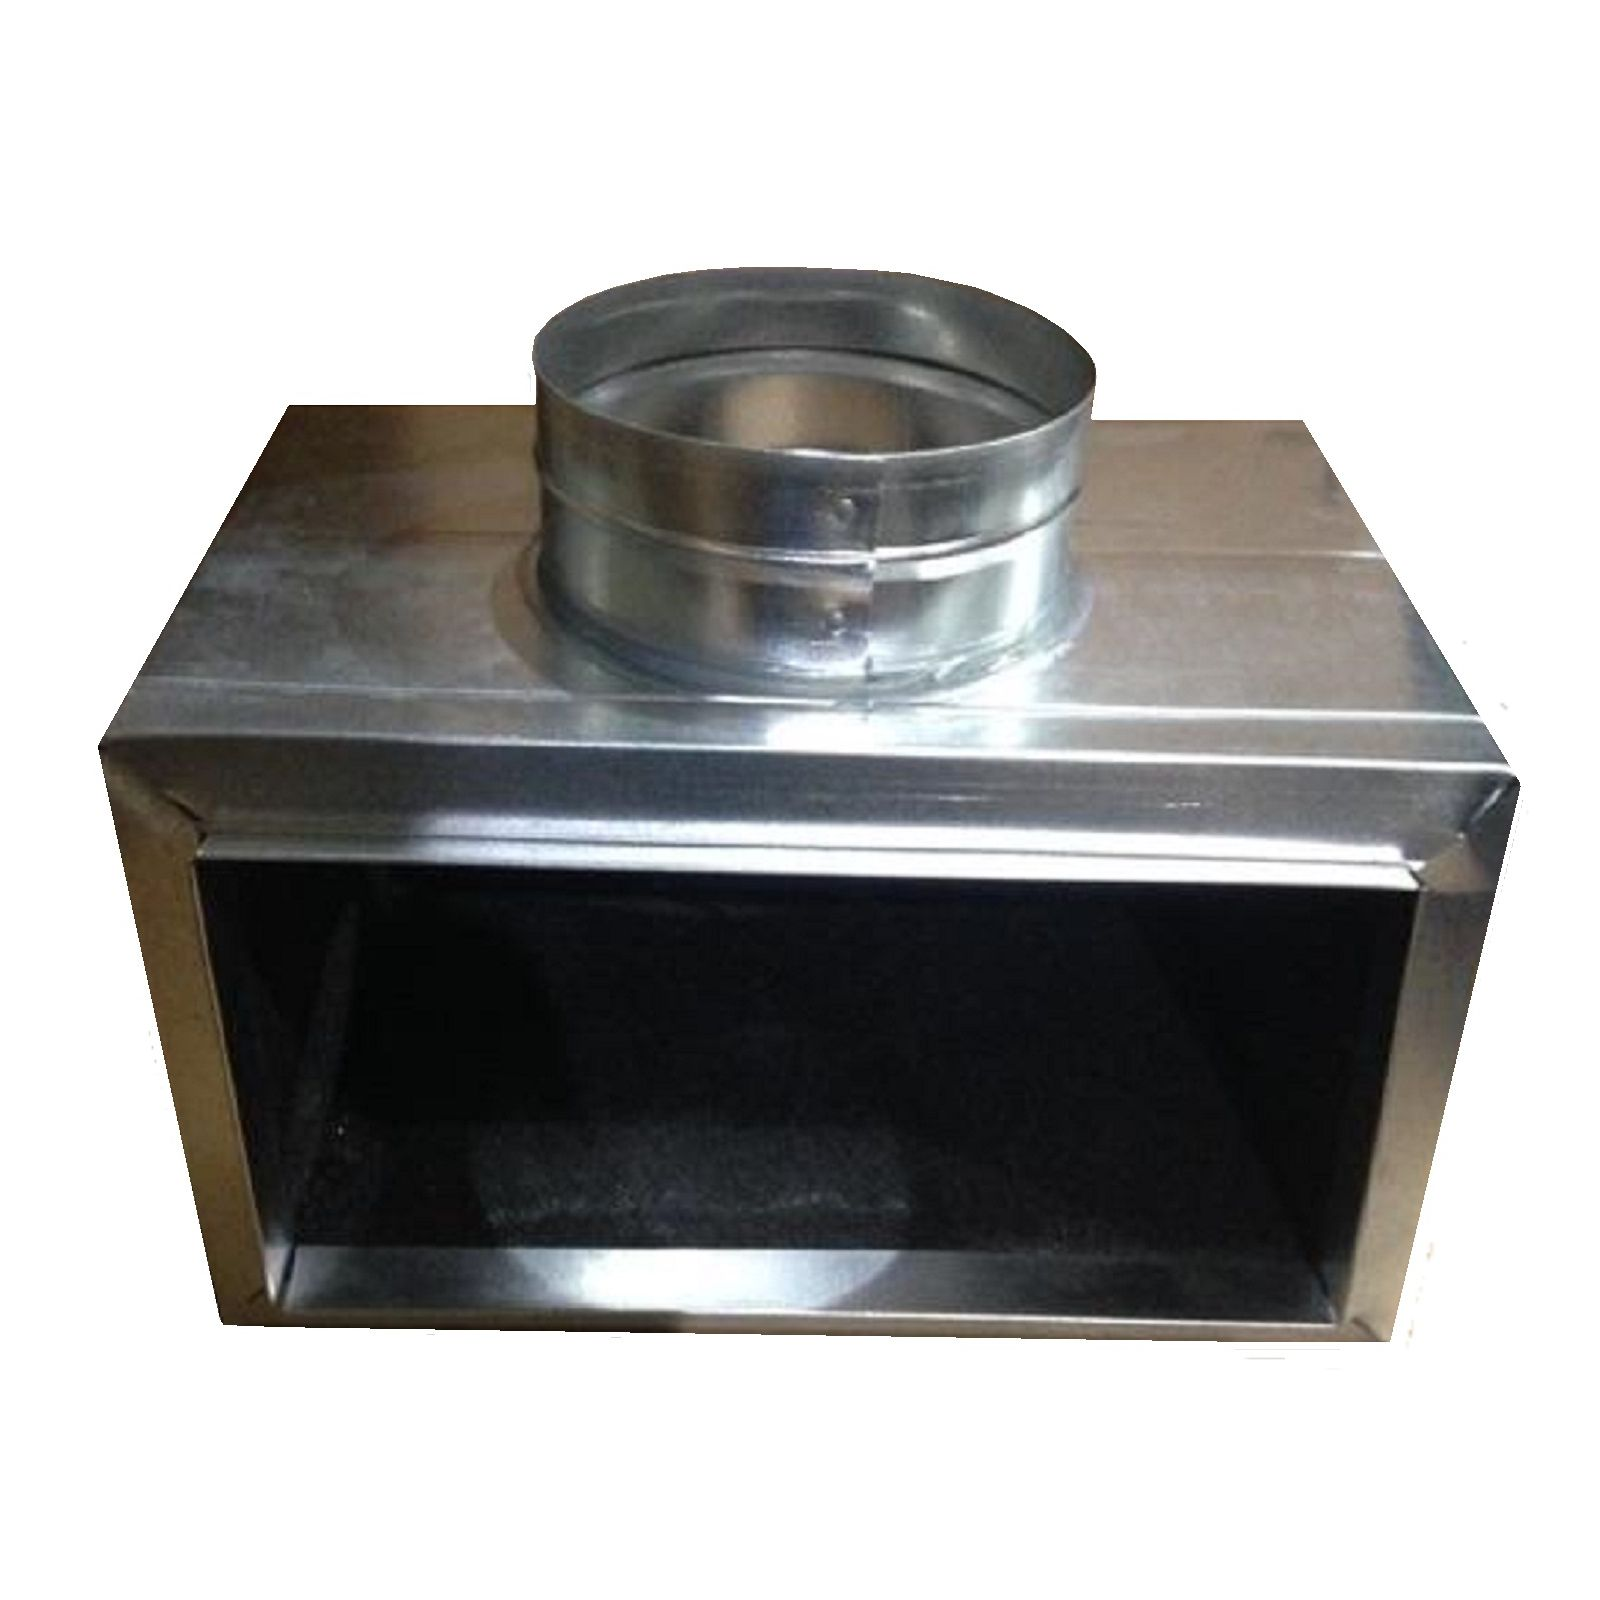 "Snap-Rite 08X04X053209NF - Side-Out Box Non-Flanged 9"" Deep, 08"" x 04"" x 05"" - R6"